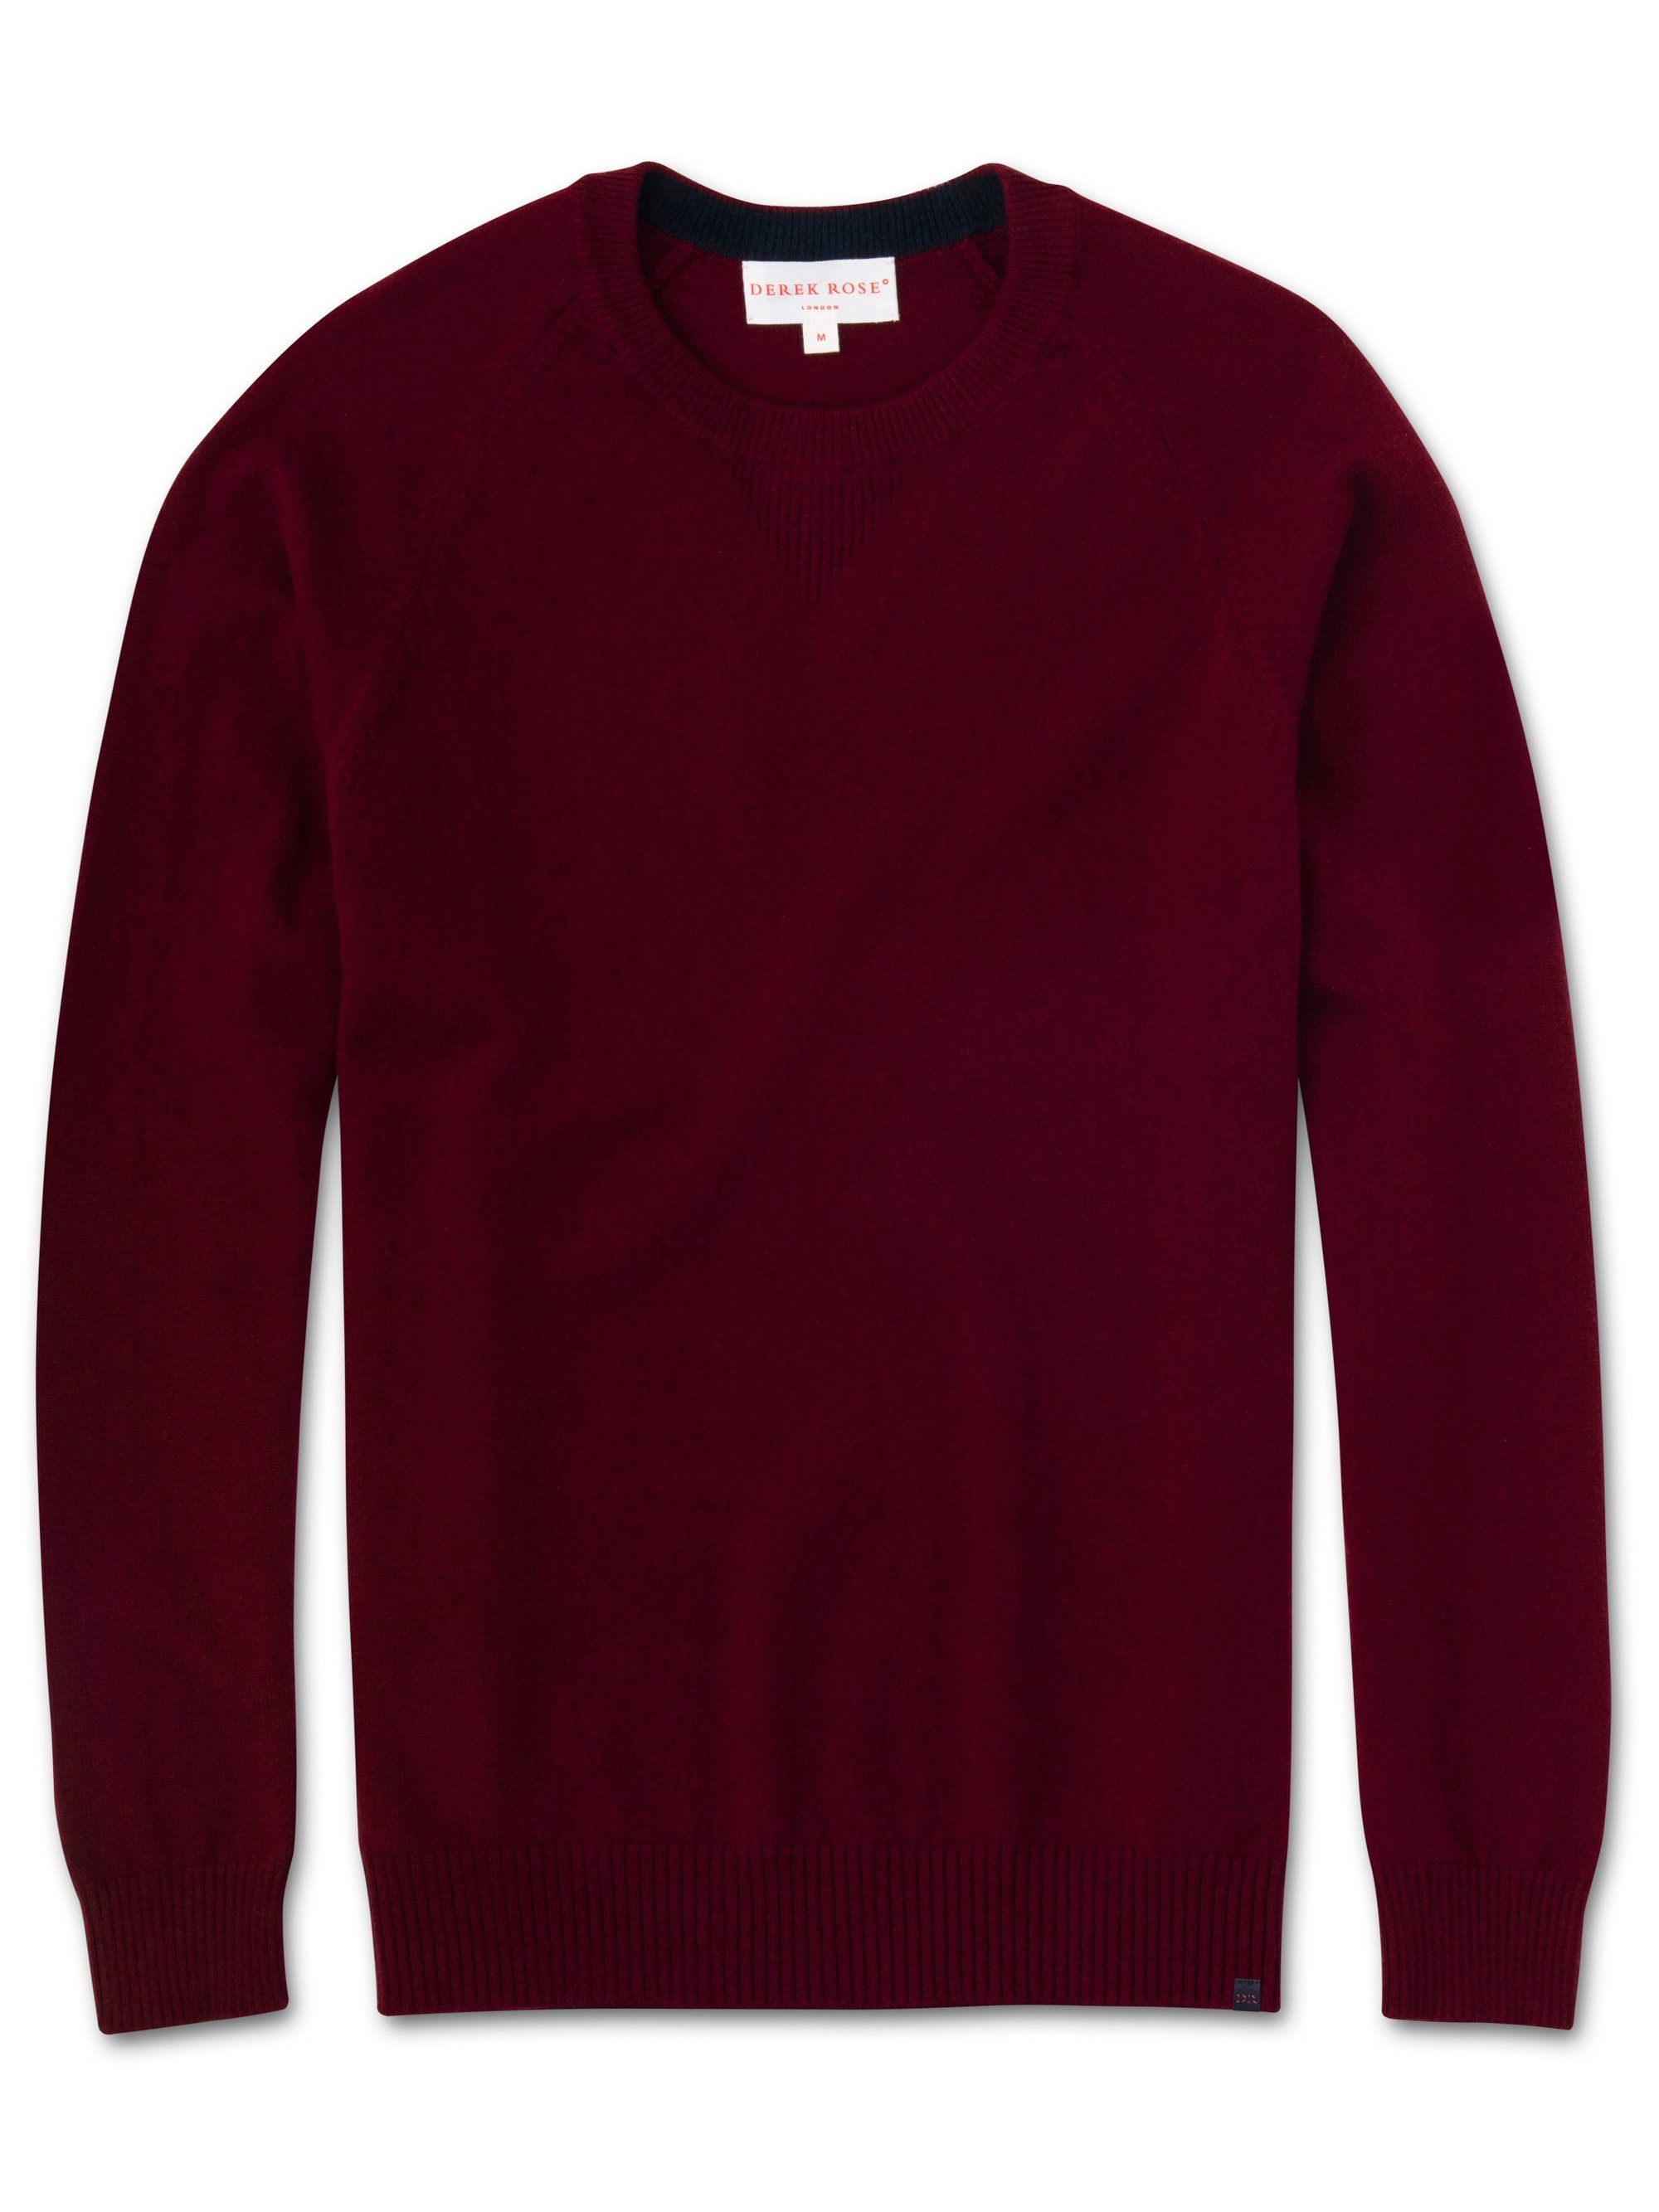 Men's Cashmere Sweater Finley 3 Pure Cashmere Burgundy